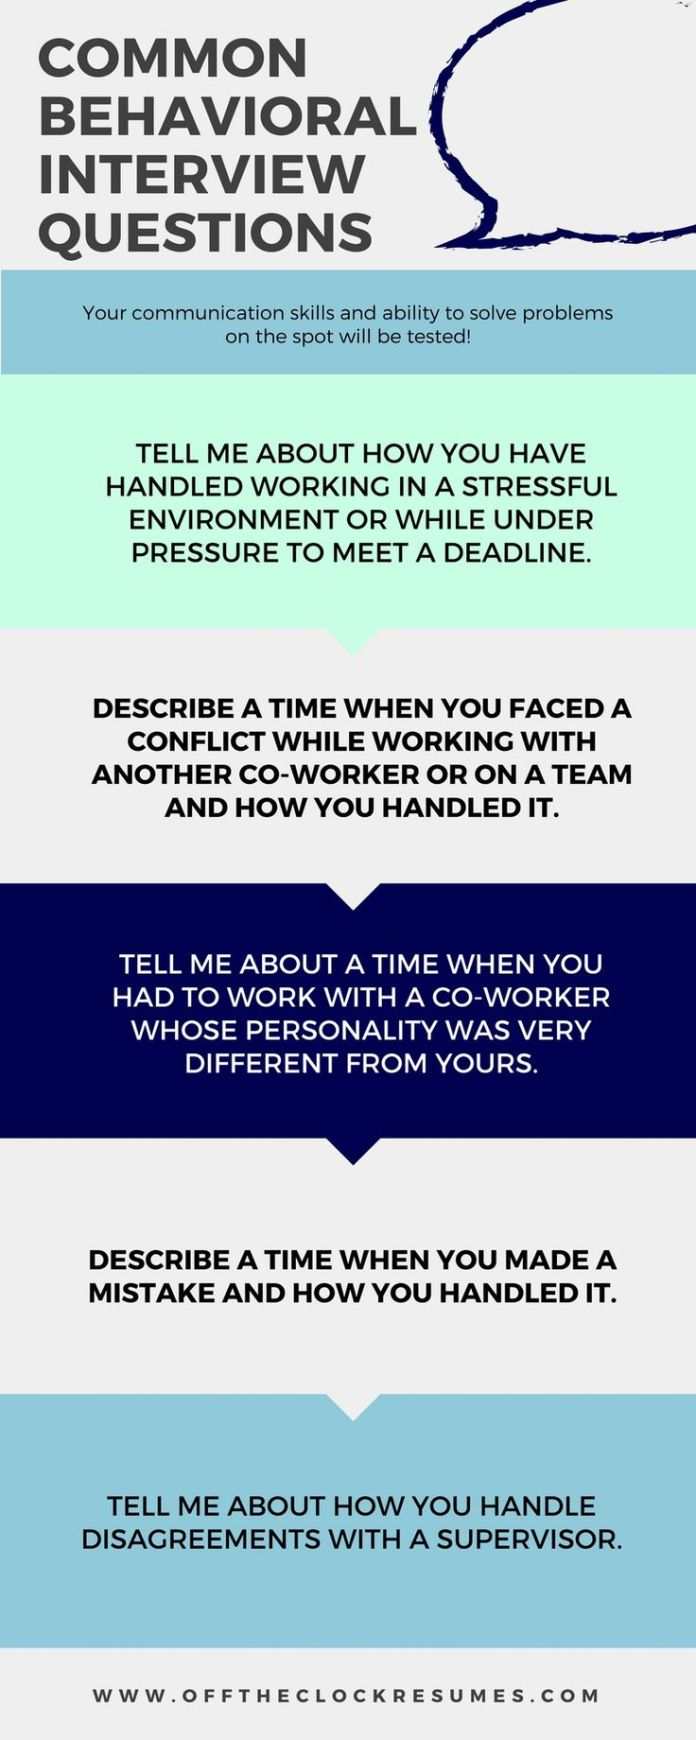 interview questions daily how long should a resume be examples infographic best answers to common behavioral - Airline Pilot Job Interview Questions And Answers